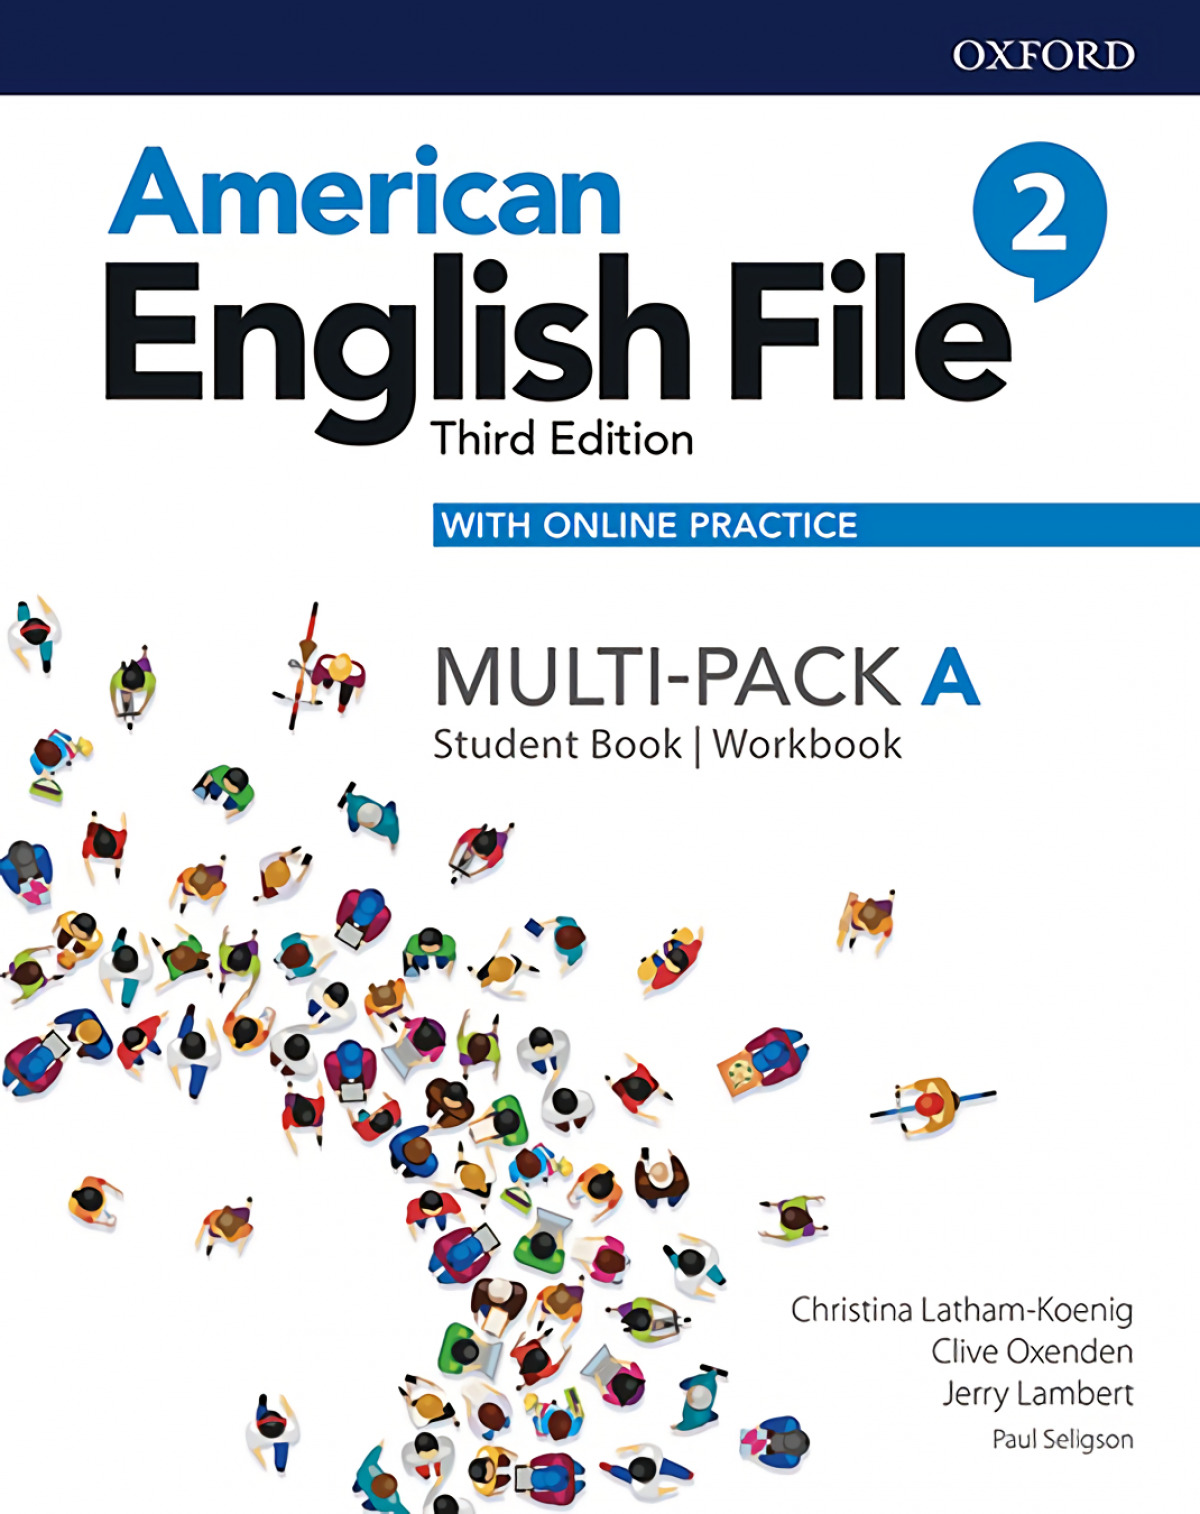 American English File 3th Edition 2. MultiPack A